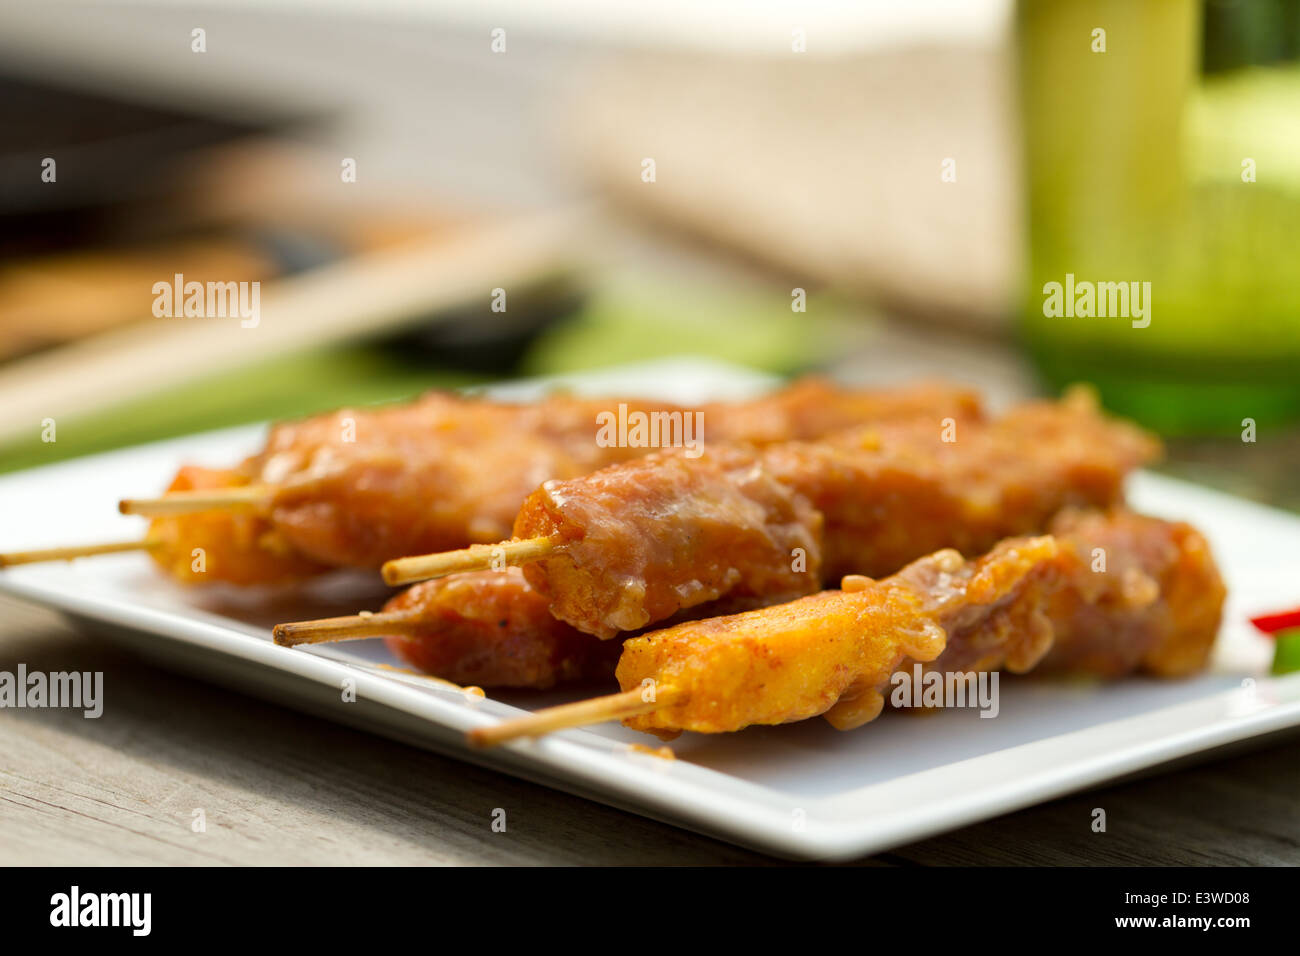 Satay chicken on skewers on a square white plate outside - Stock Image